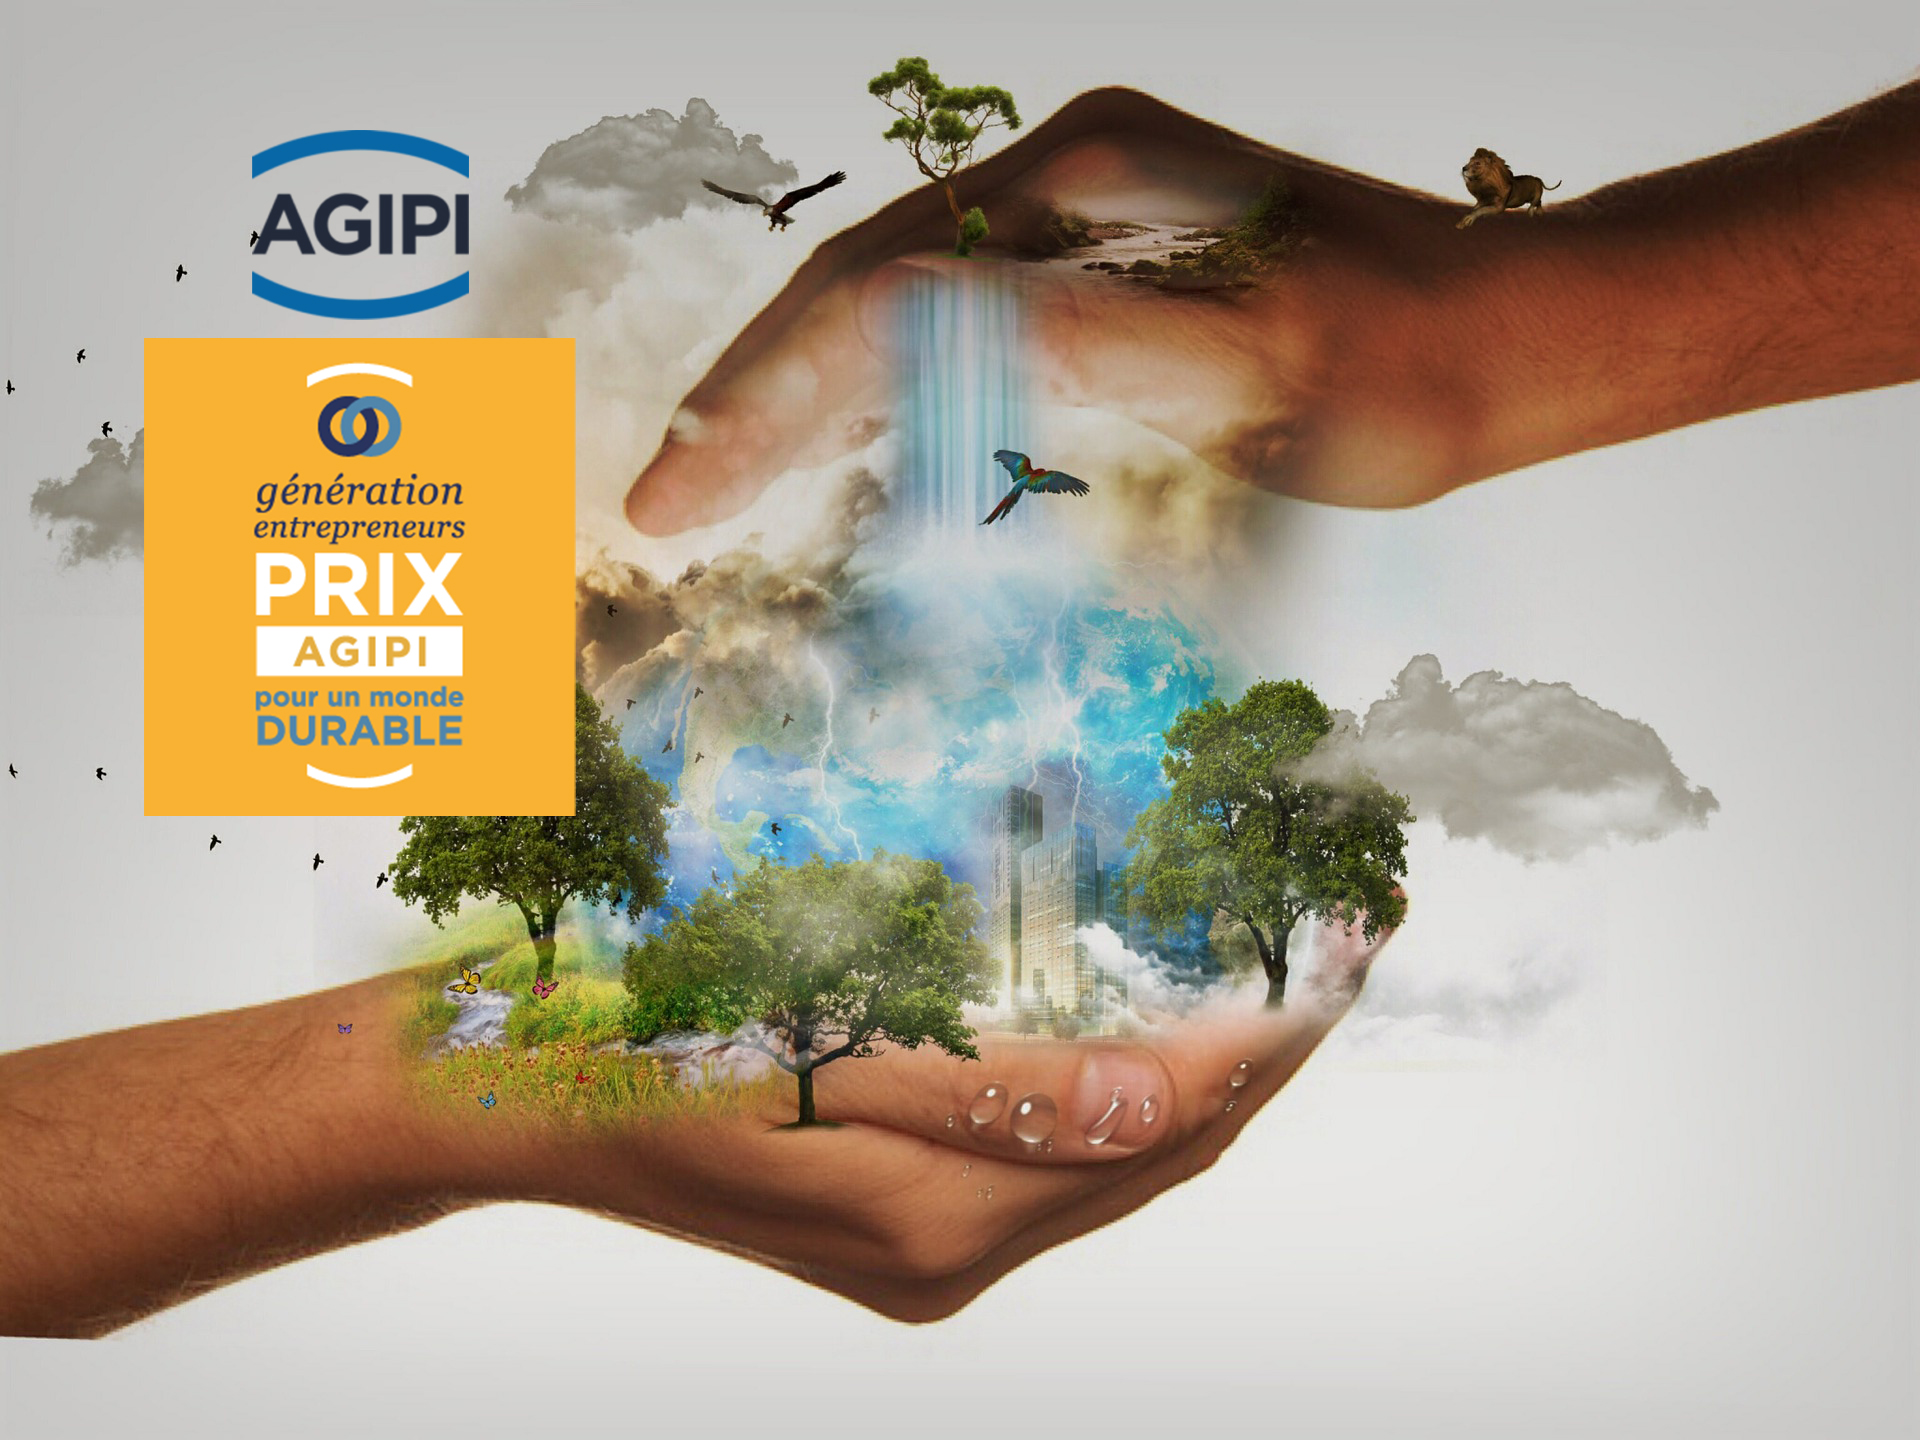 Generation entrepreneurs: AGIPI Prize for a sustainable world